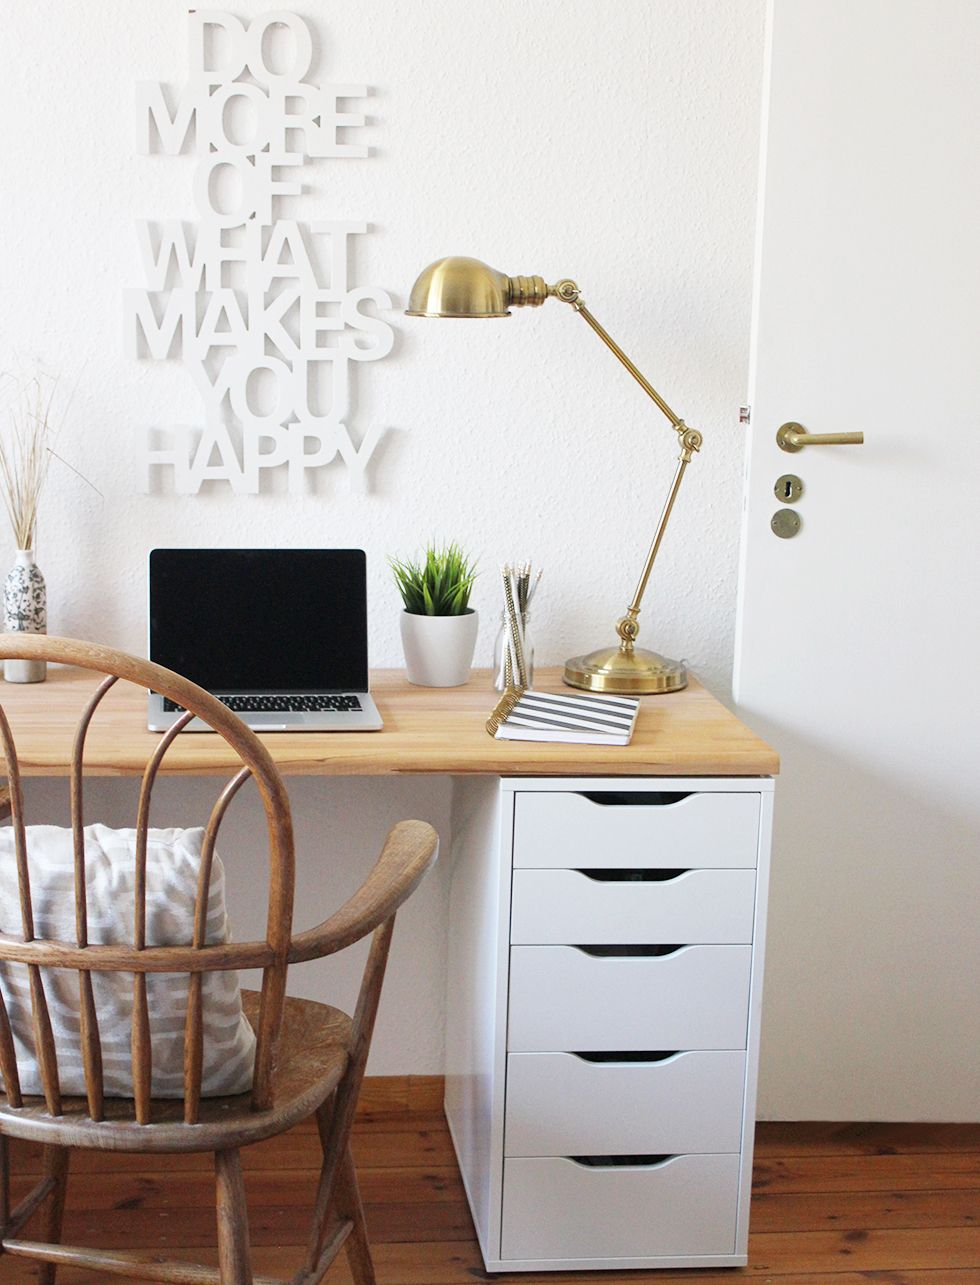 Diy desk for two using ikea alex drawer a wooden - Schminktisch diy ...